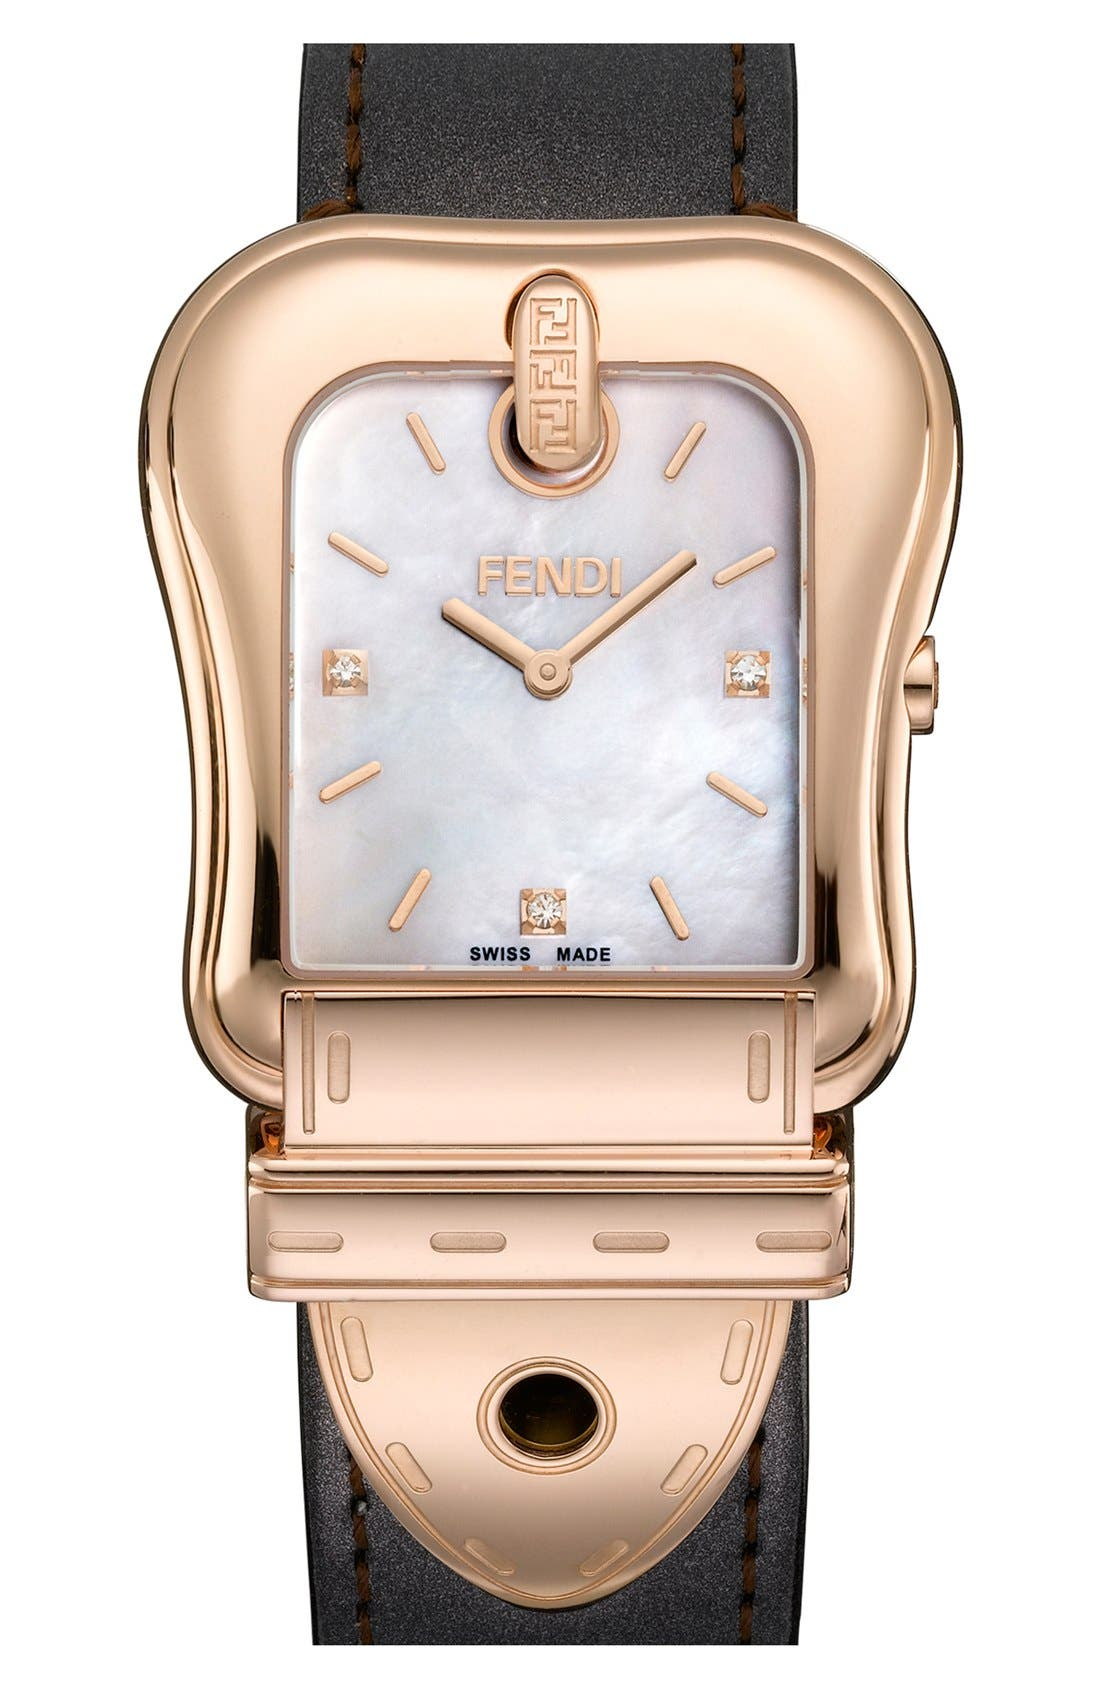 Main Image - Fendi 'B. Fendi' Diamond Marker Watch, 33mm x 43mm